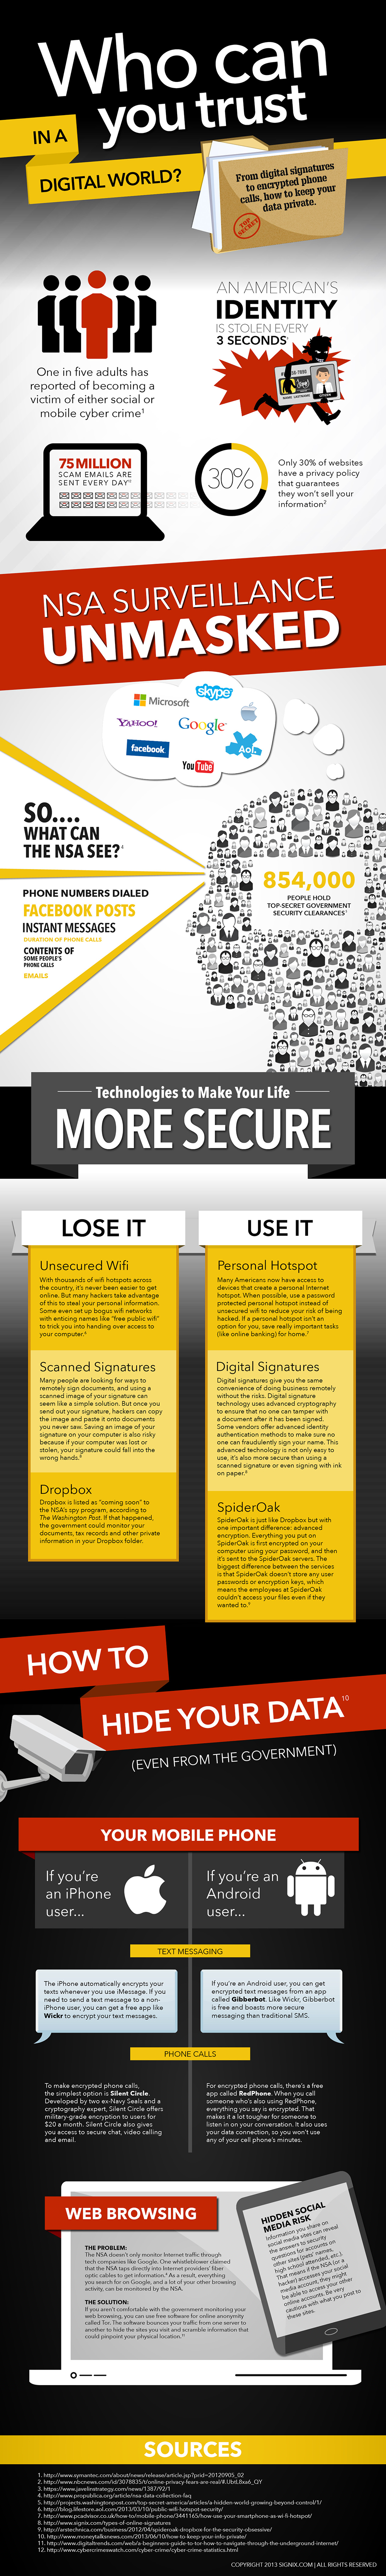 How To Be Secure in a Digital World